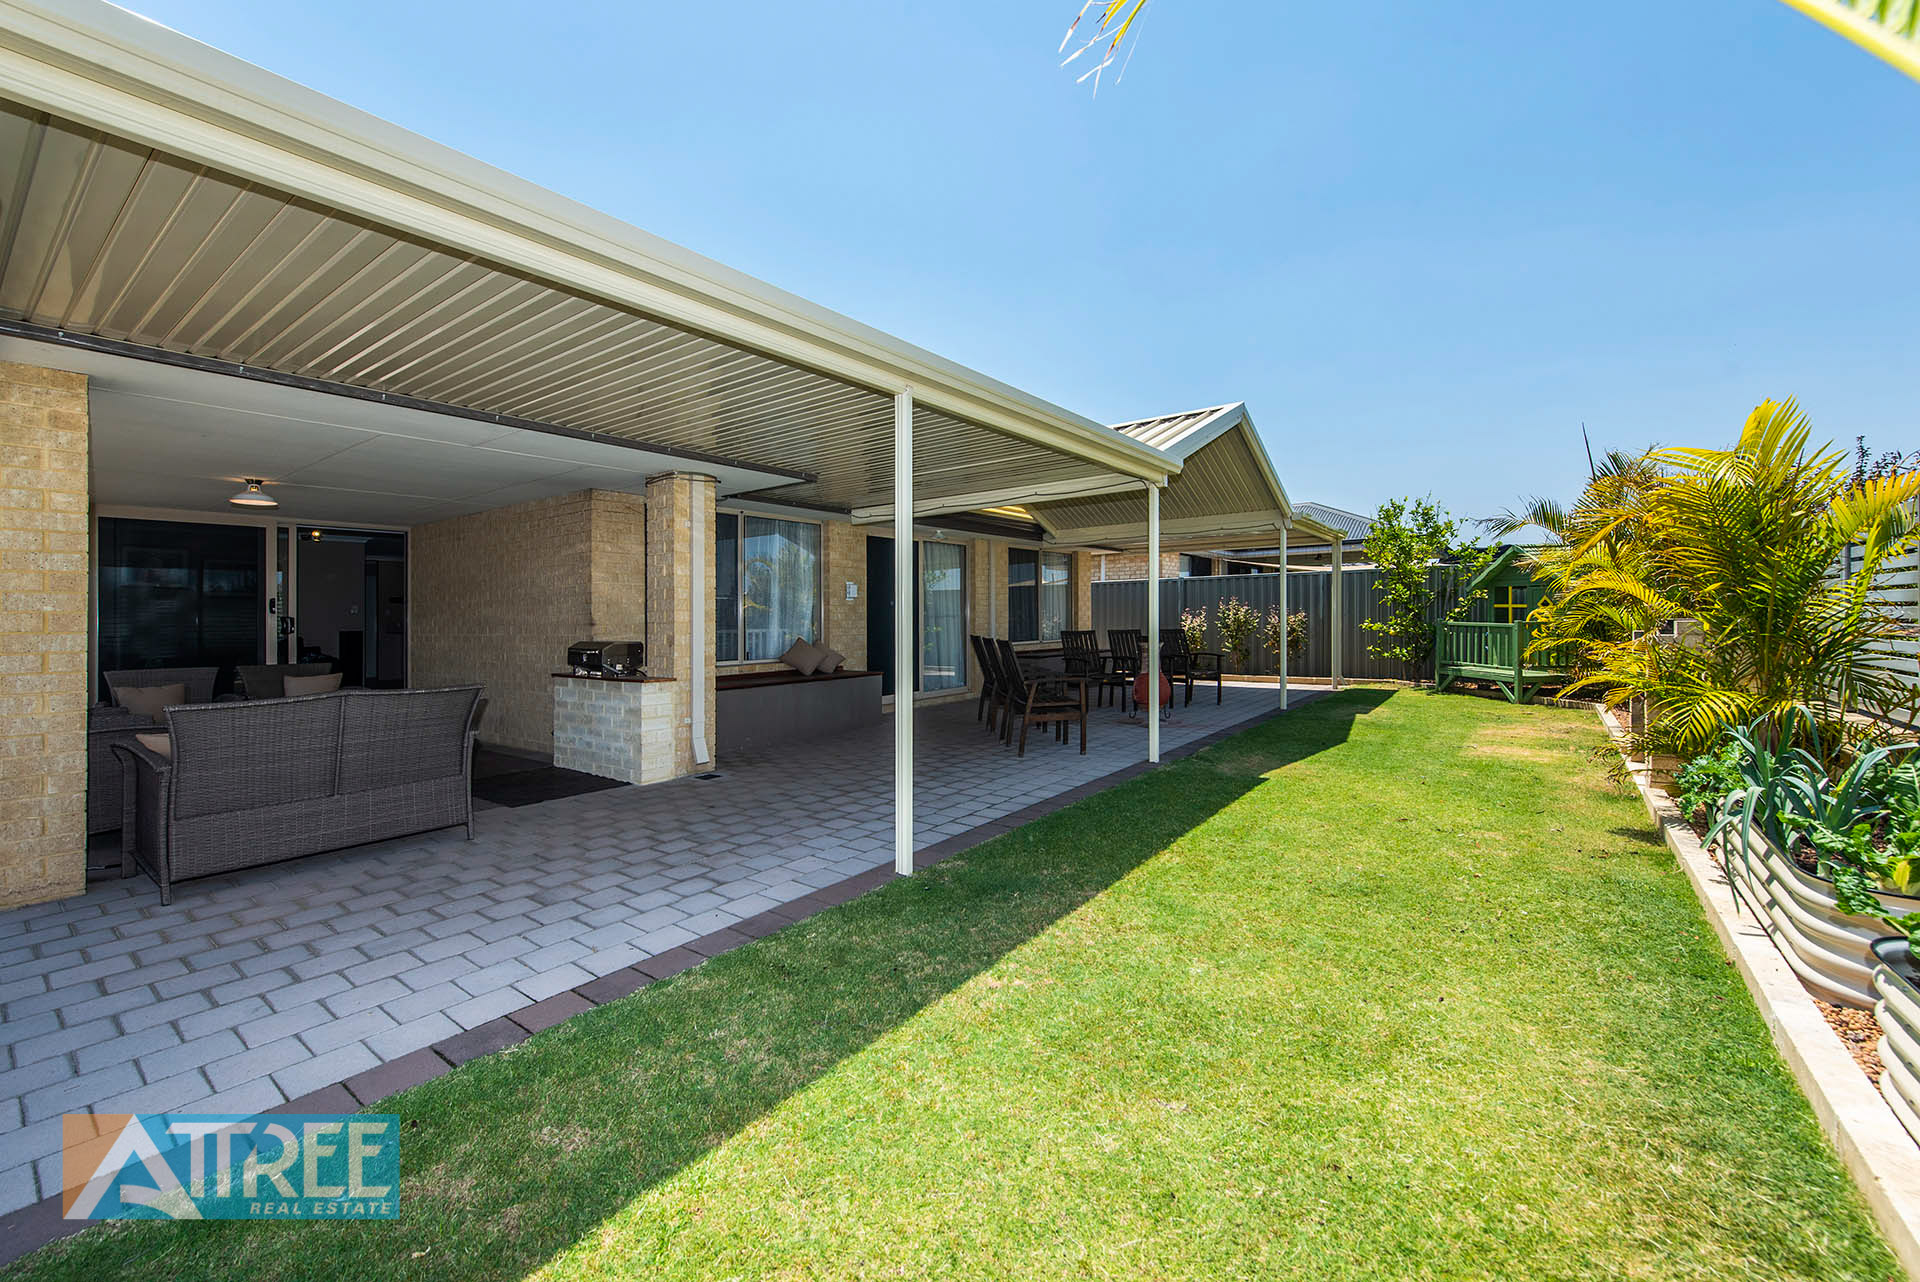 Property for sale in HARRISDALE, 15 Cowes Street : Attree Real Estate